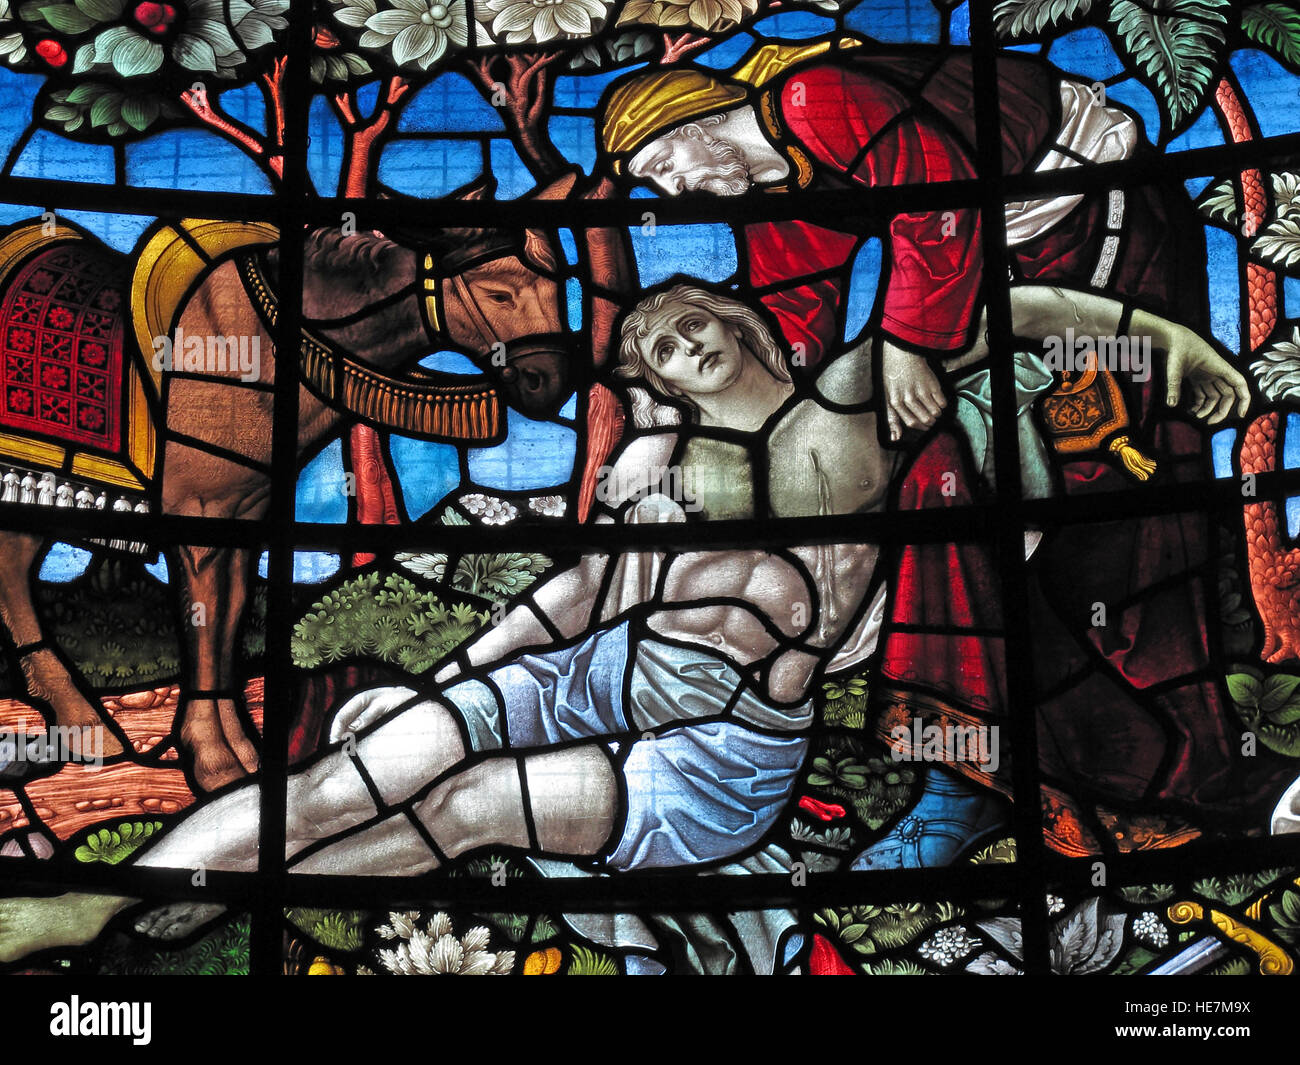 St Annes Belfast Cathedral Interior,Stained glass, Jesus,Donkey, taken down from the cross - Stock Image